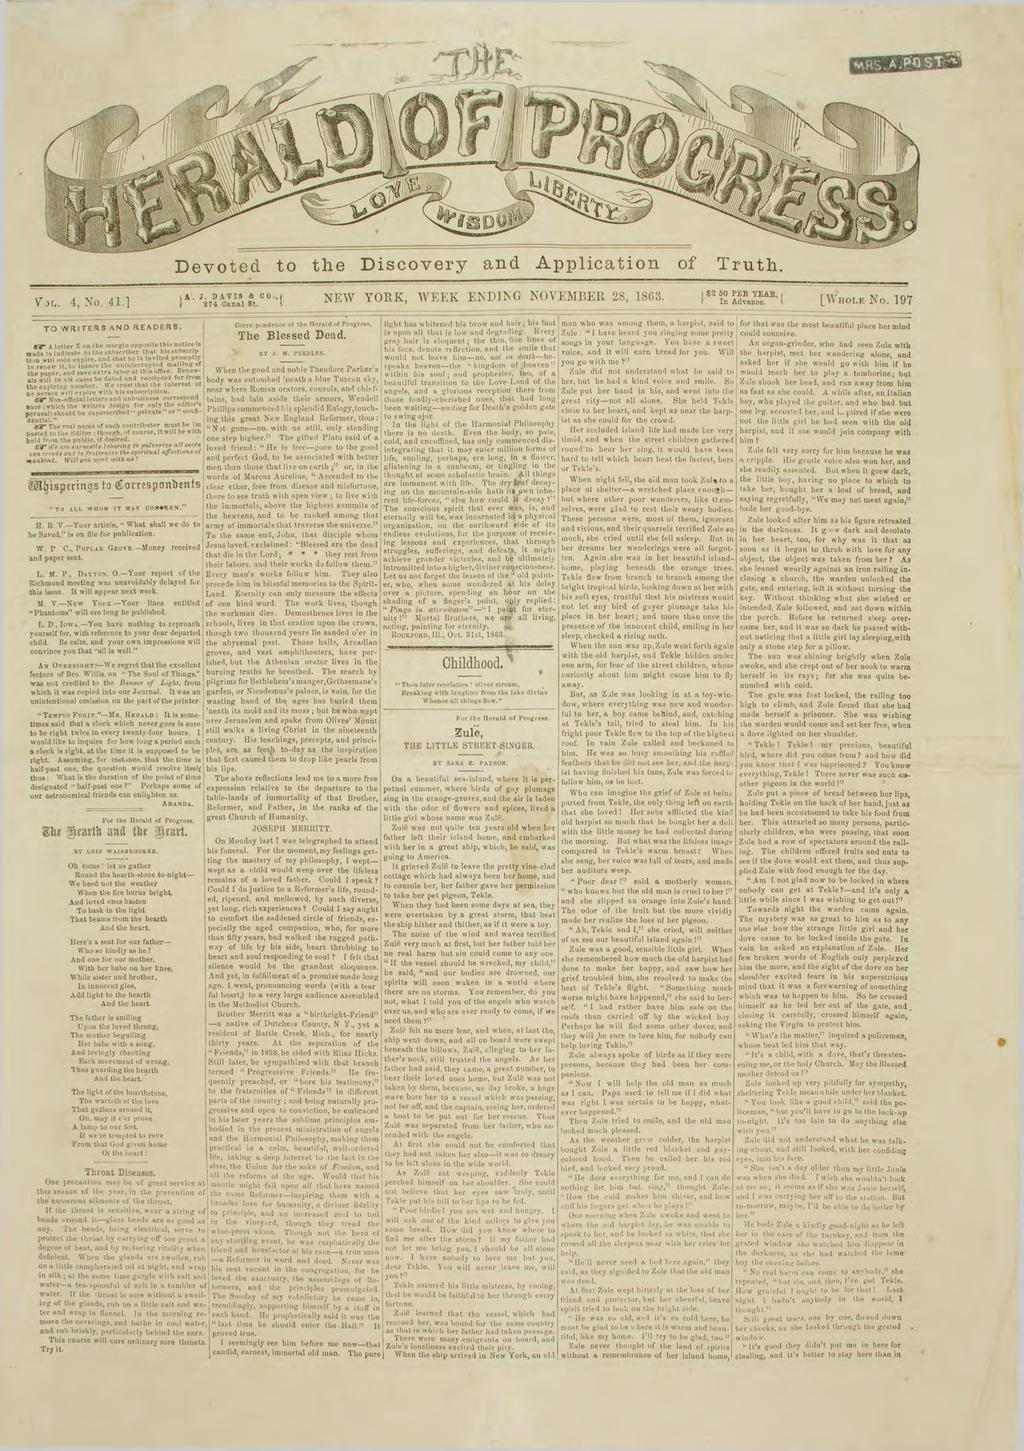 Devoted to the Discovery Appliction of Truth. V O L. 4, No. 41.] J. DAVIS ft CO., 374 Cnl St. NEW YORK, WEEK ENDING NOVEMBER 28, 1863. I $2 50 PEE YEAR, ' In Advnce. [WHOLE No.